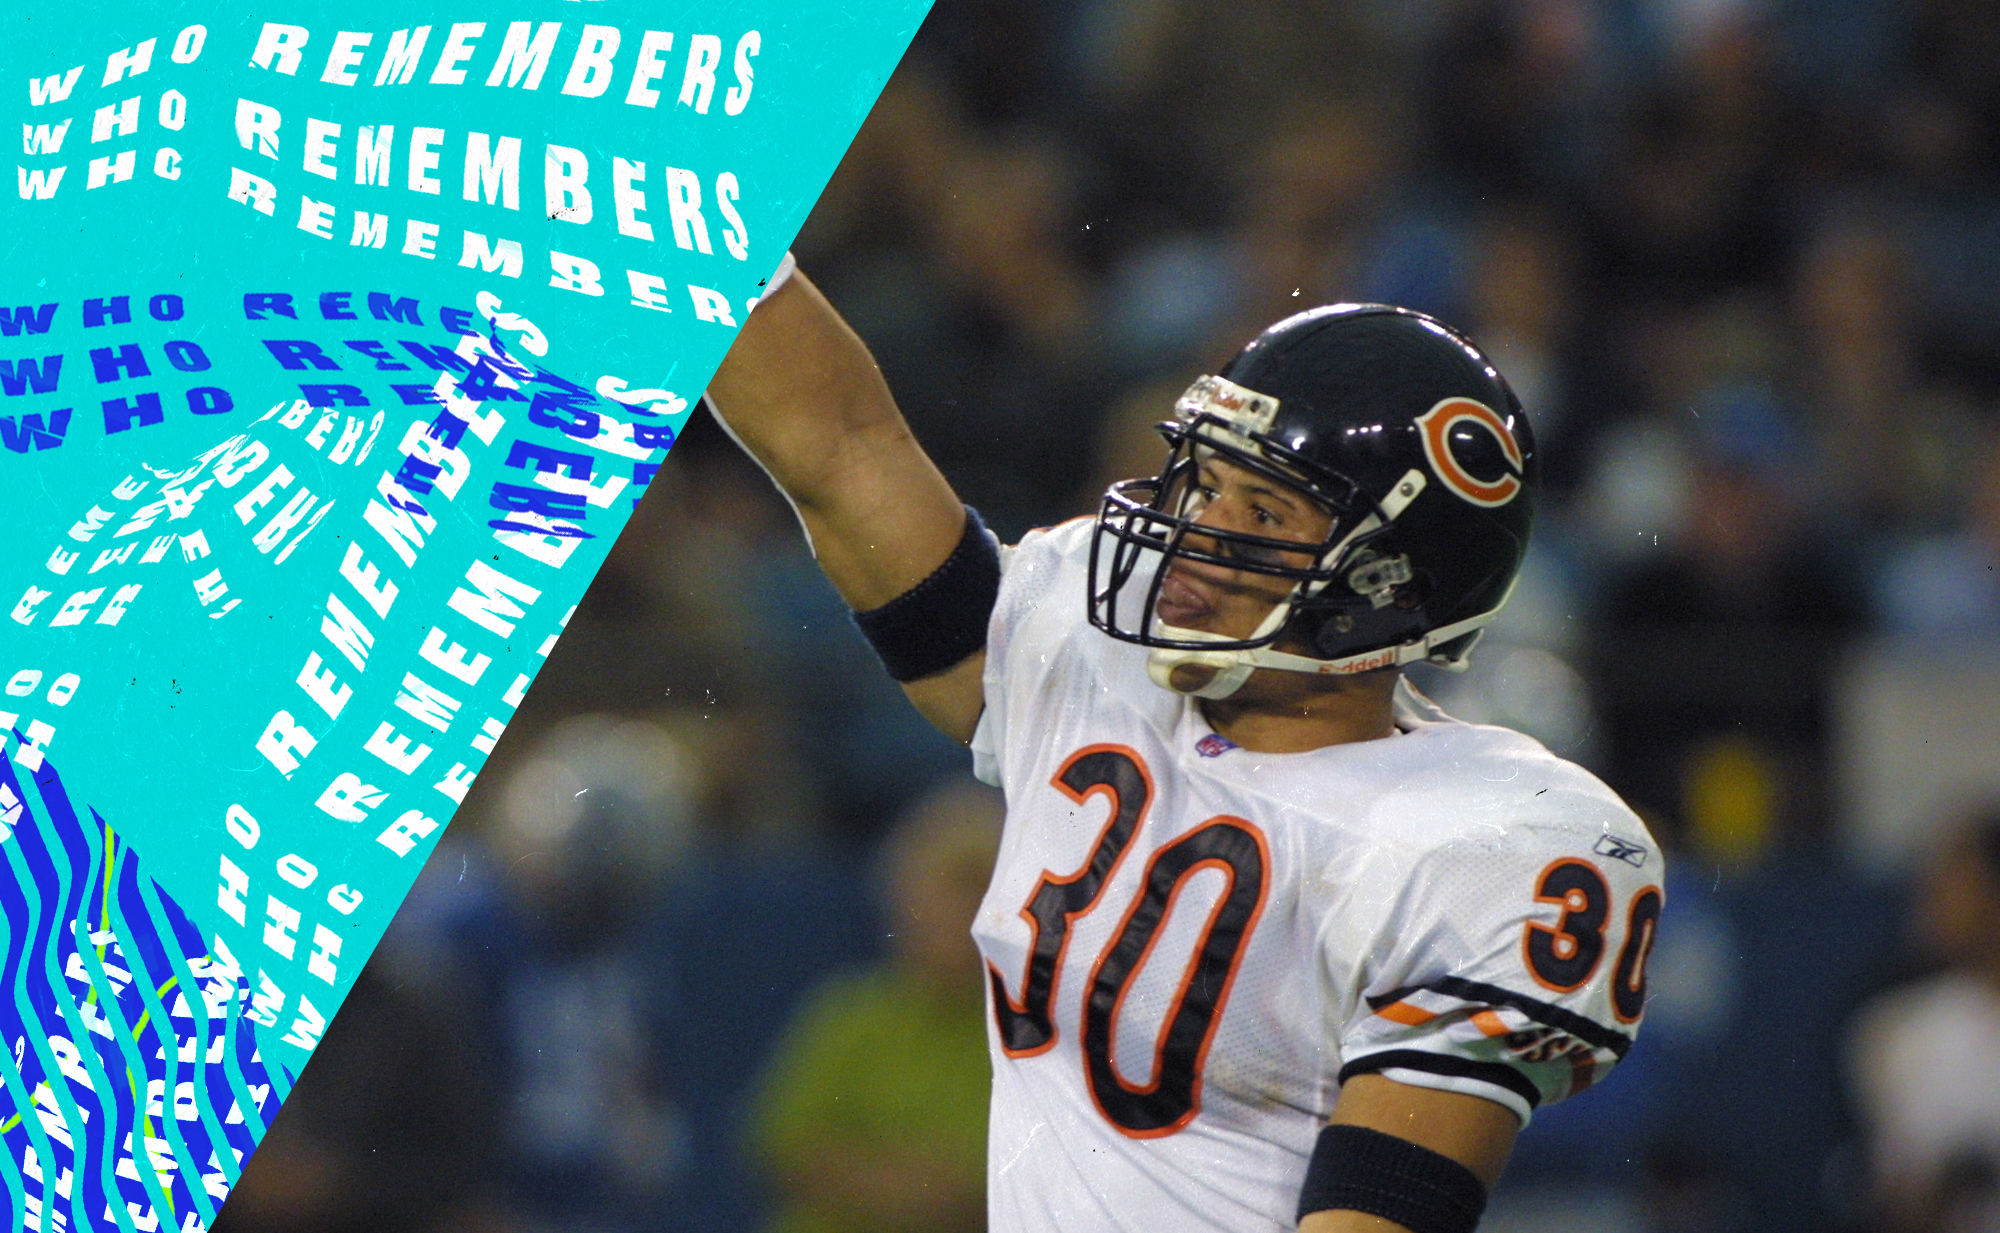 Mike Brown cemented himself in NFL history when he won back-to-back OT games for the Bears